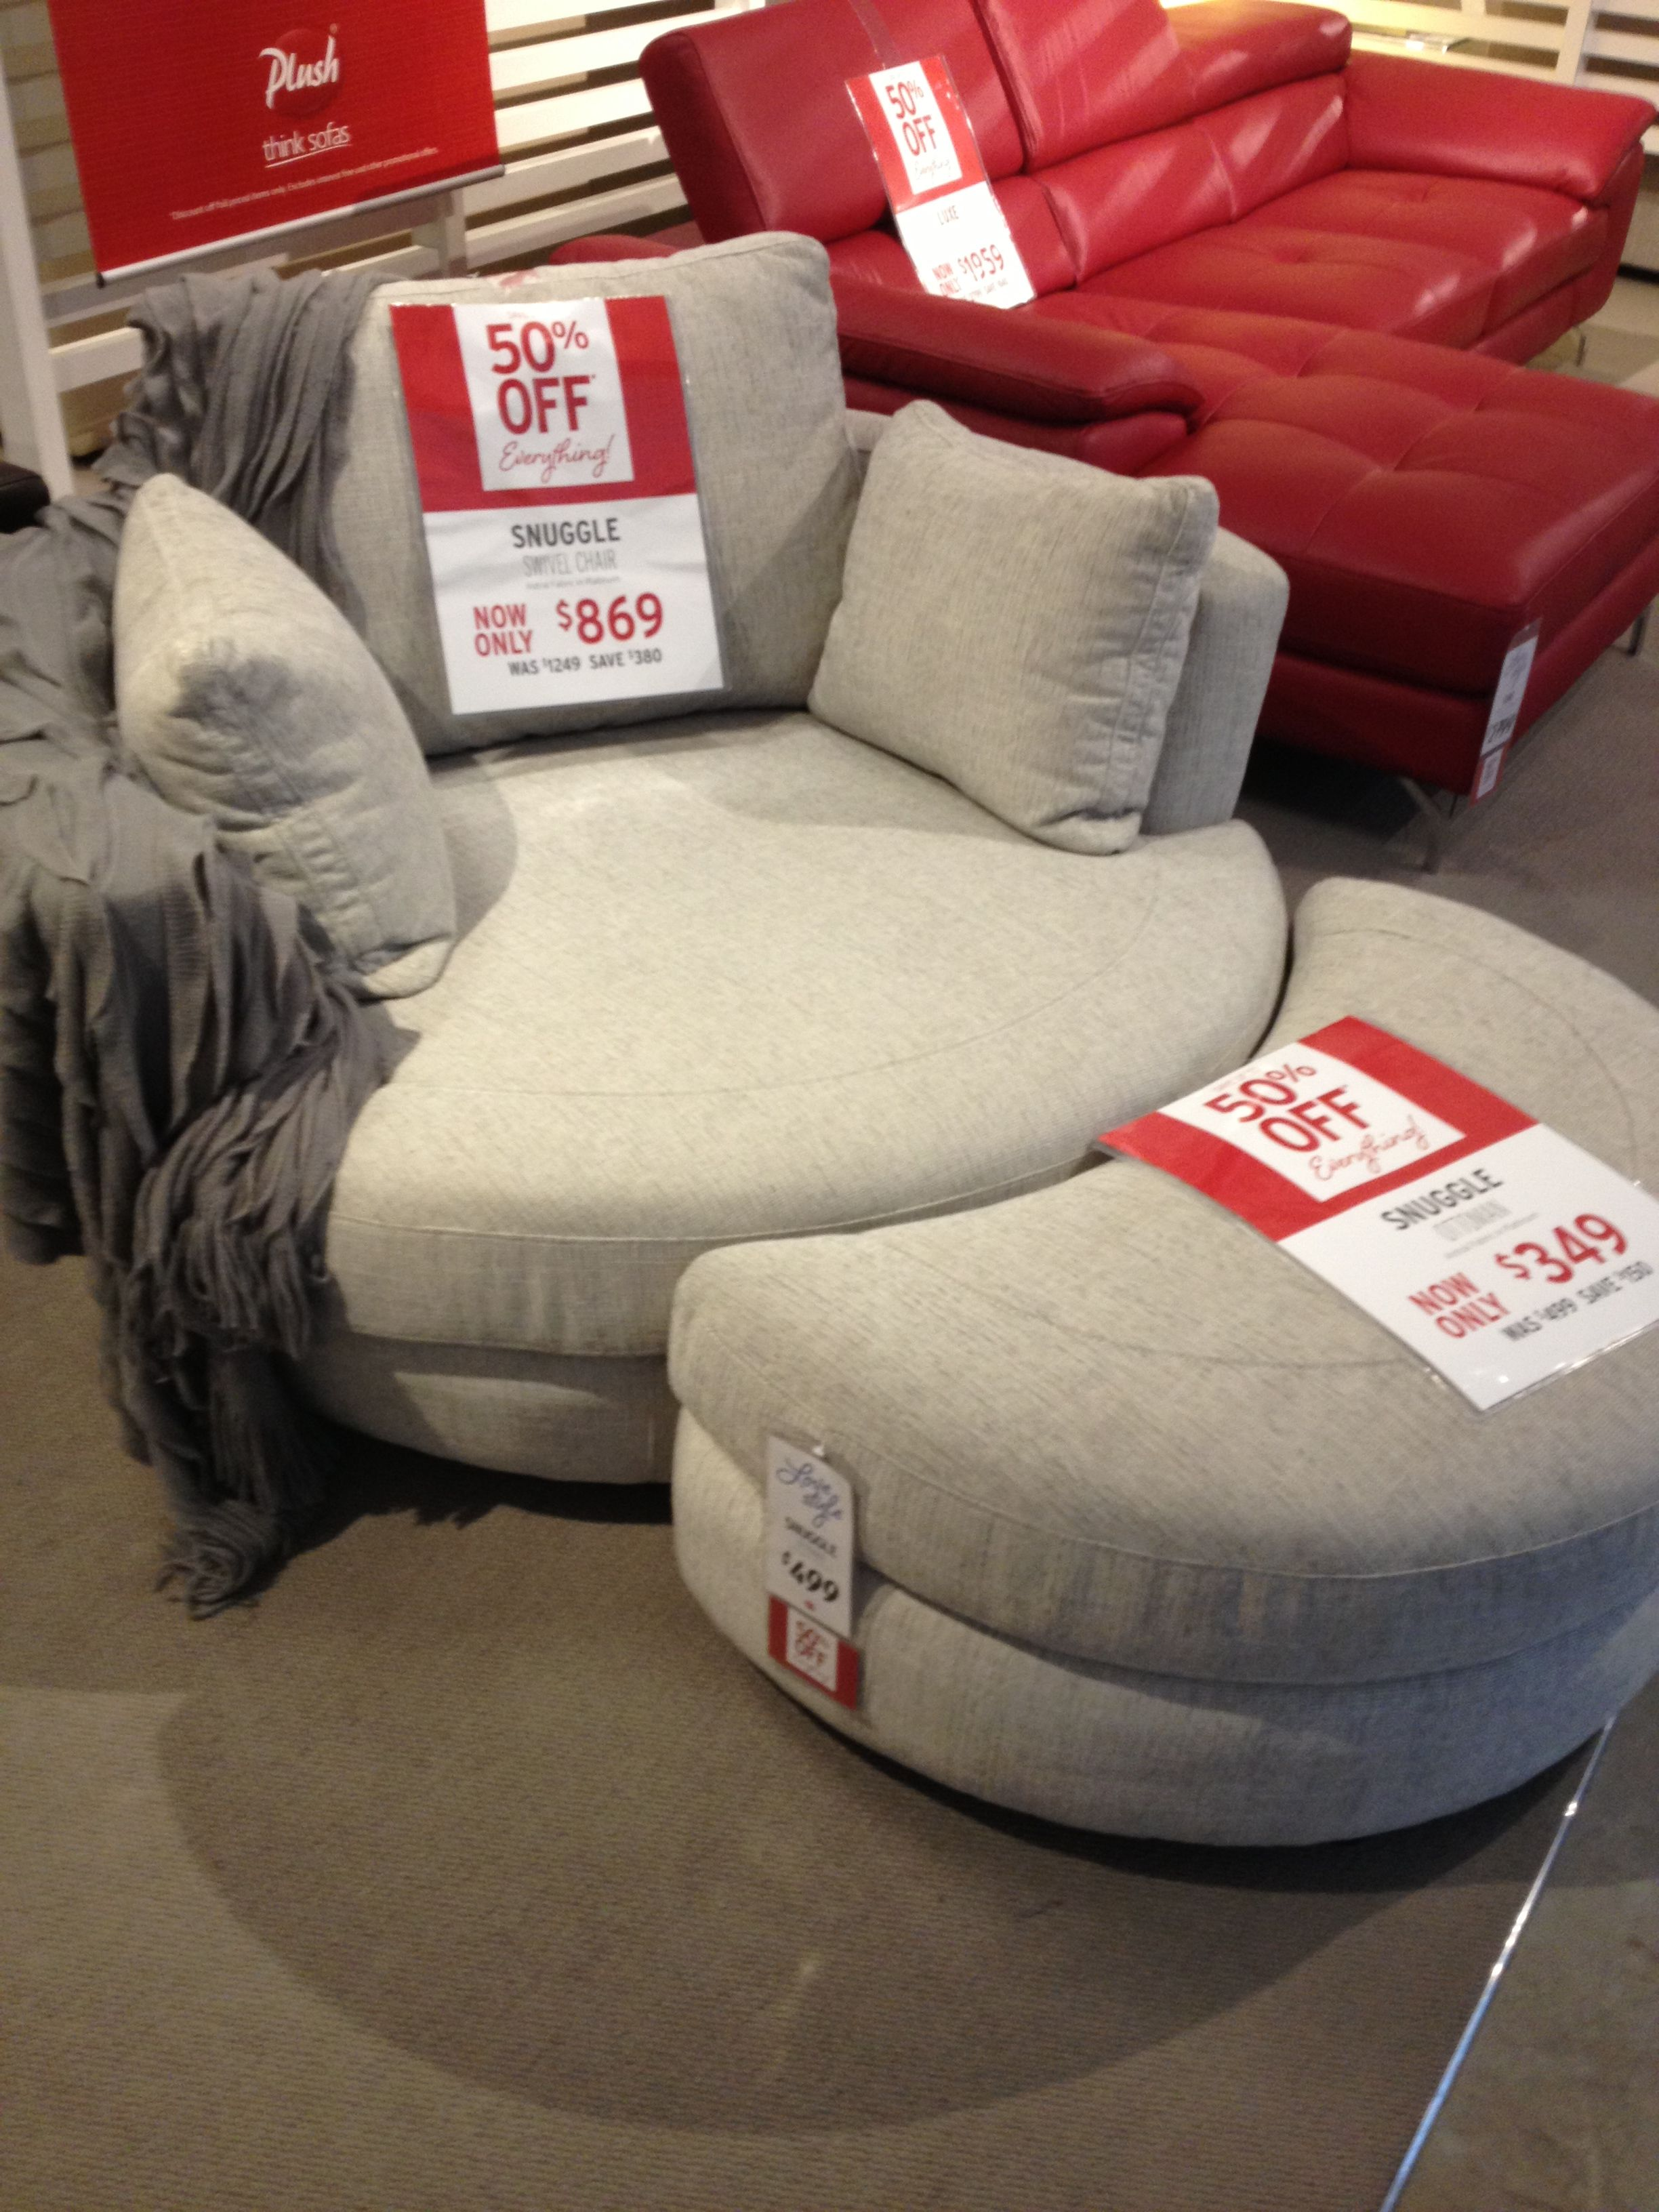 Snuggle Sofa And Swivel Chair Polish Corner Beds Uk Yes Please From Plush Furniture In 2019